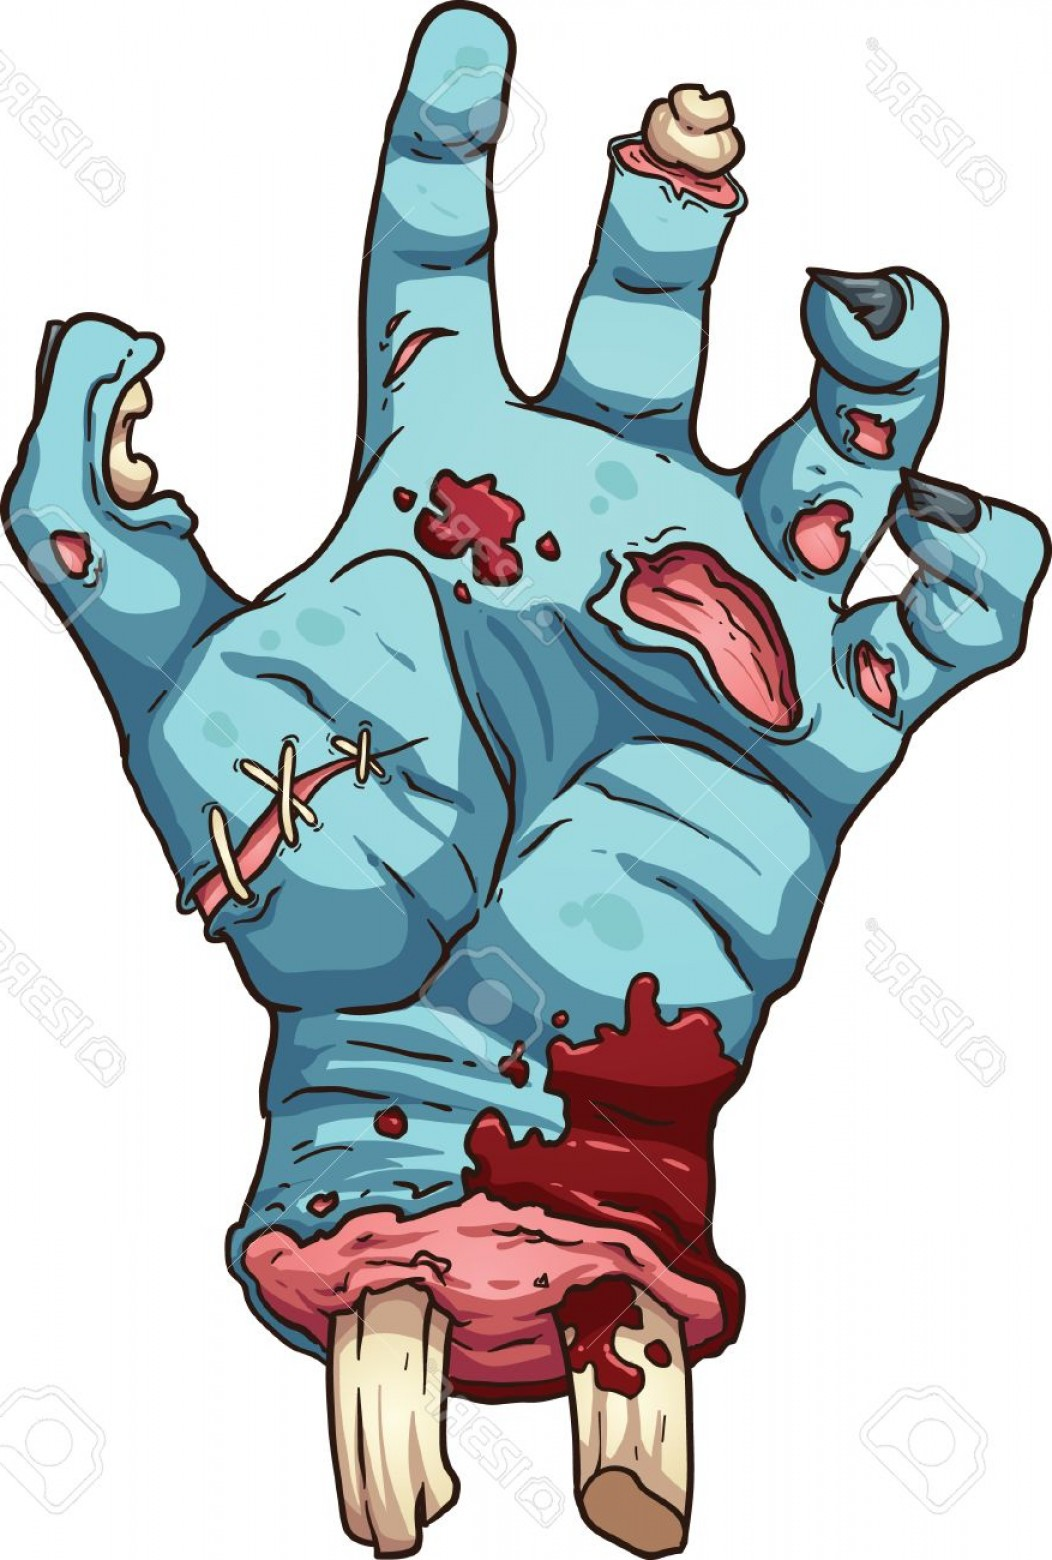 Hand Vector Clip Art: Photostock Vector Zombie Hand Vector Clip Art Illustration With Simple Gradients All In A Single Layer